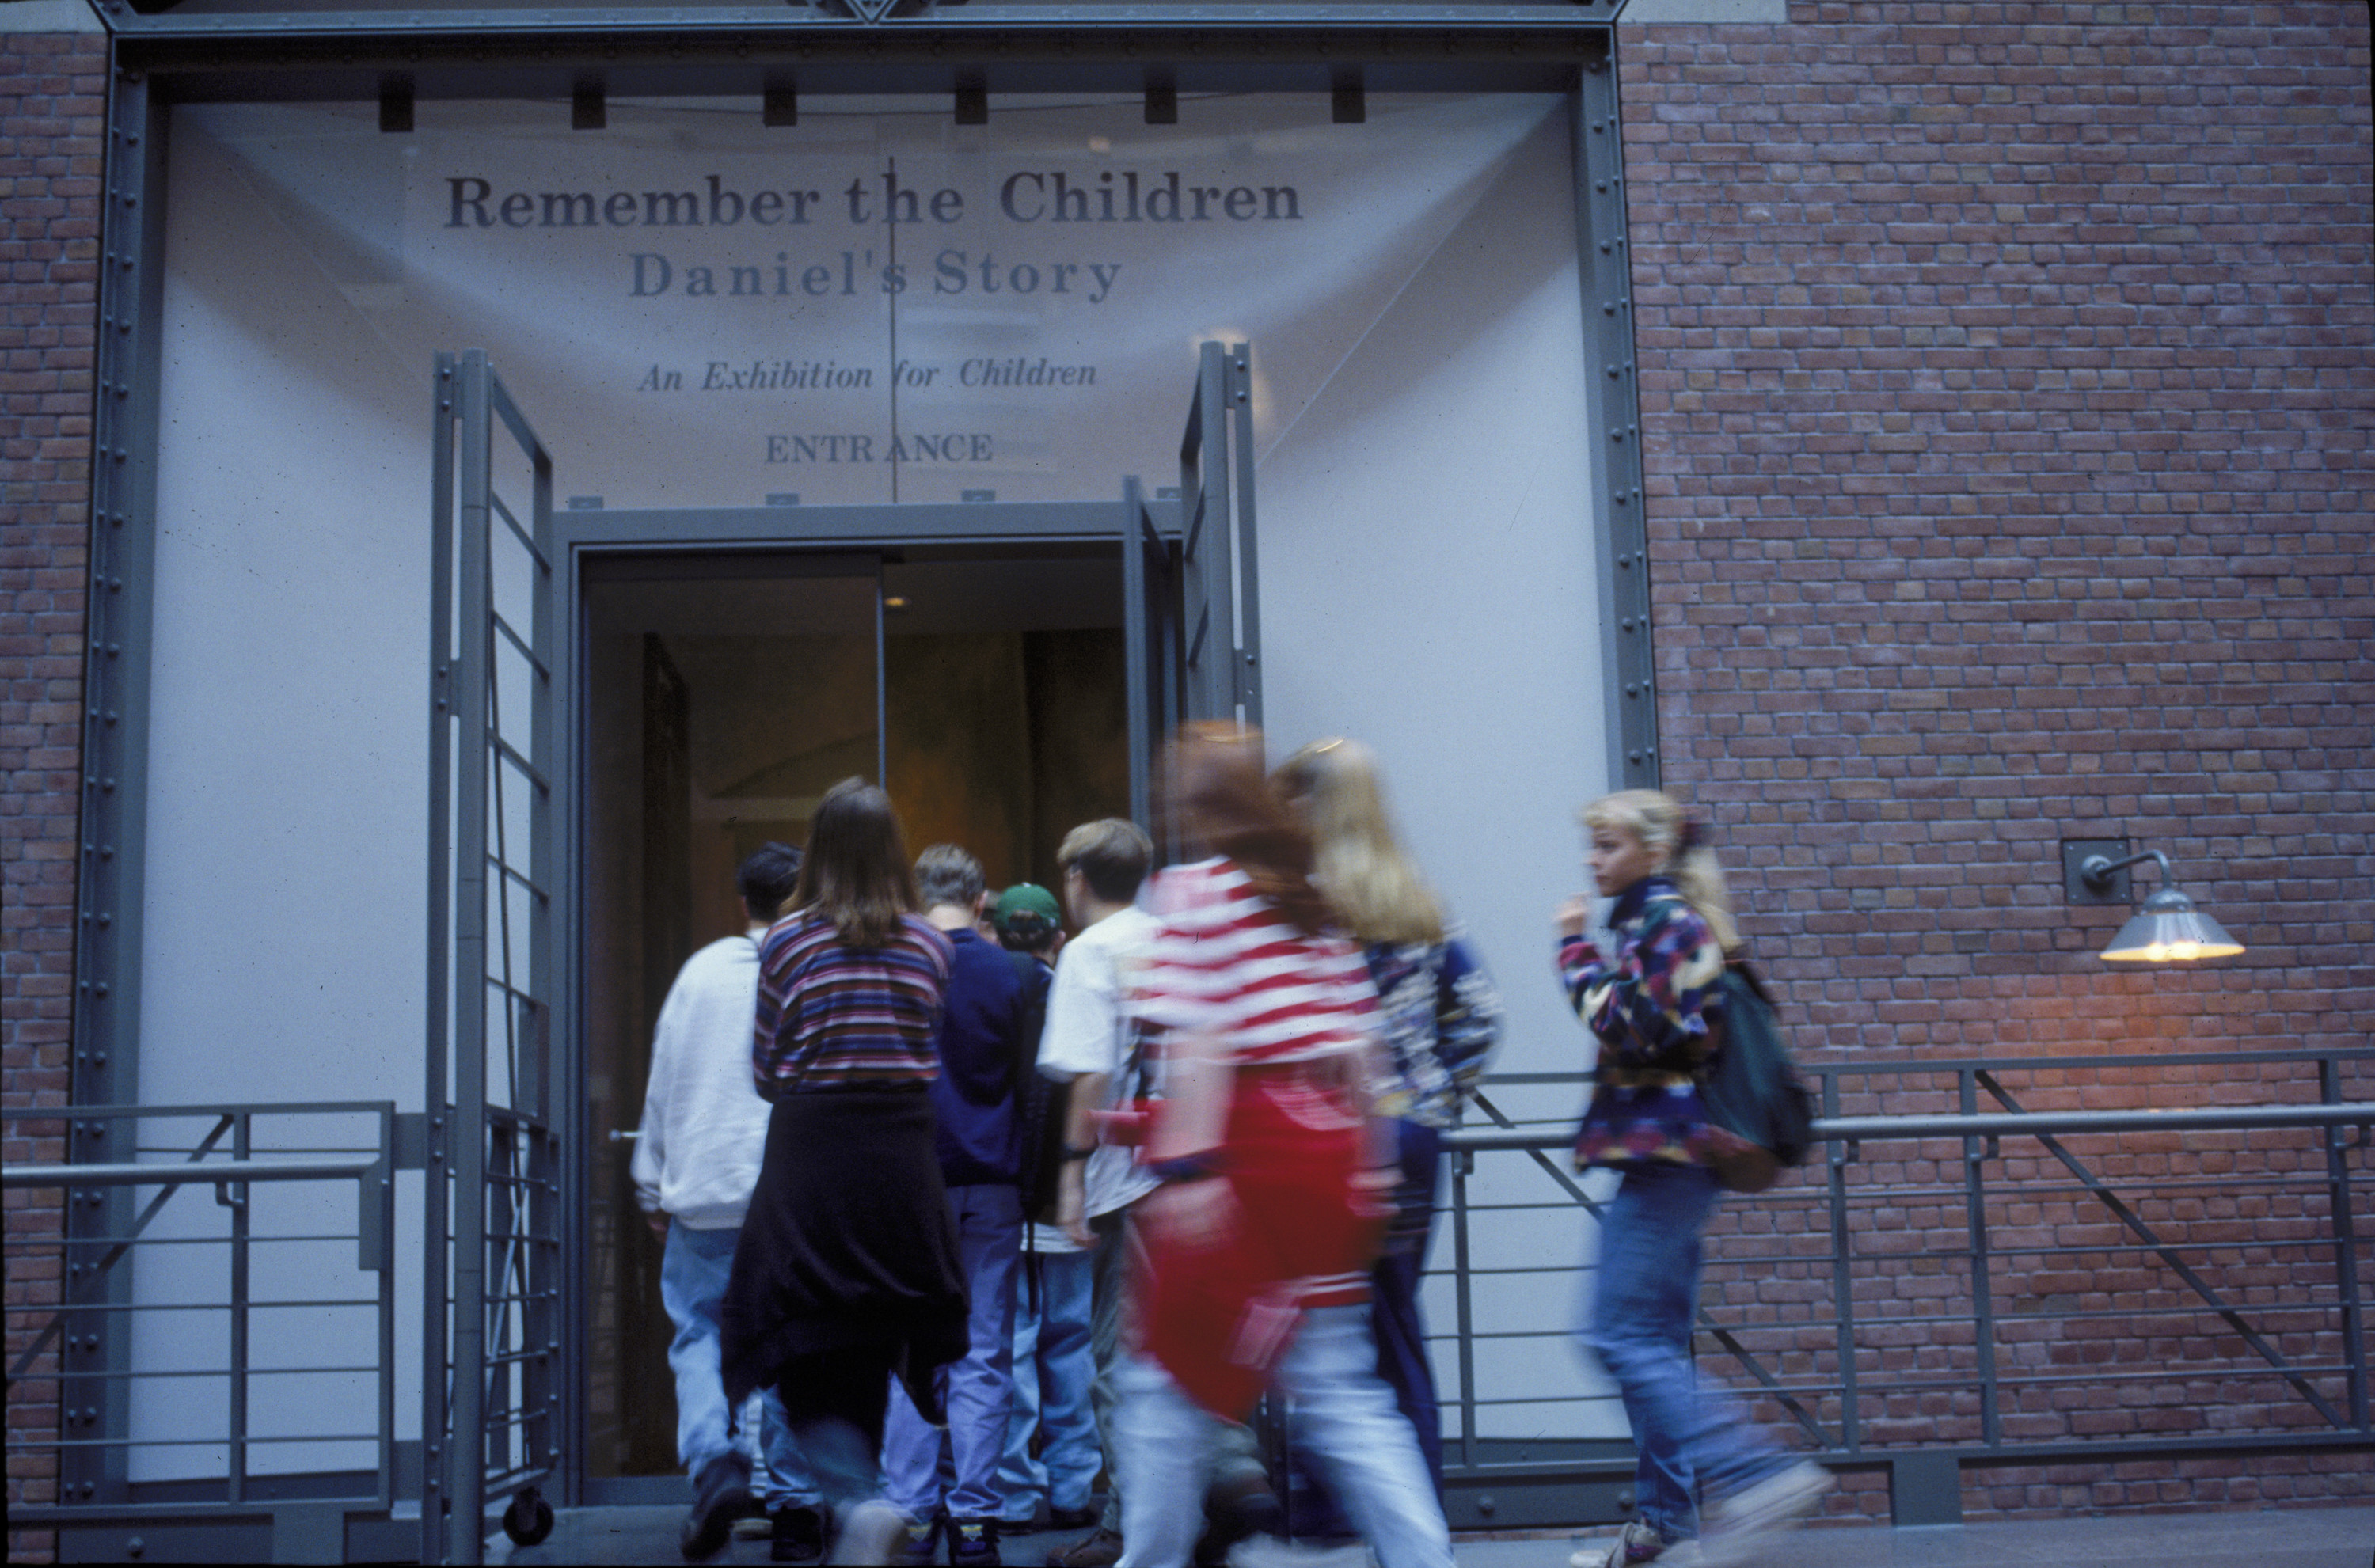 A group of children enter the Remember the Children: Daniel's Story exhibit in the Hall of Witness at the U.S. Holocaust Memorial Museum.